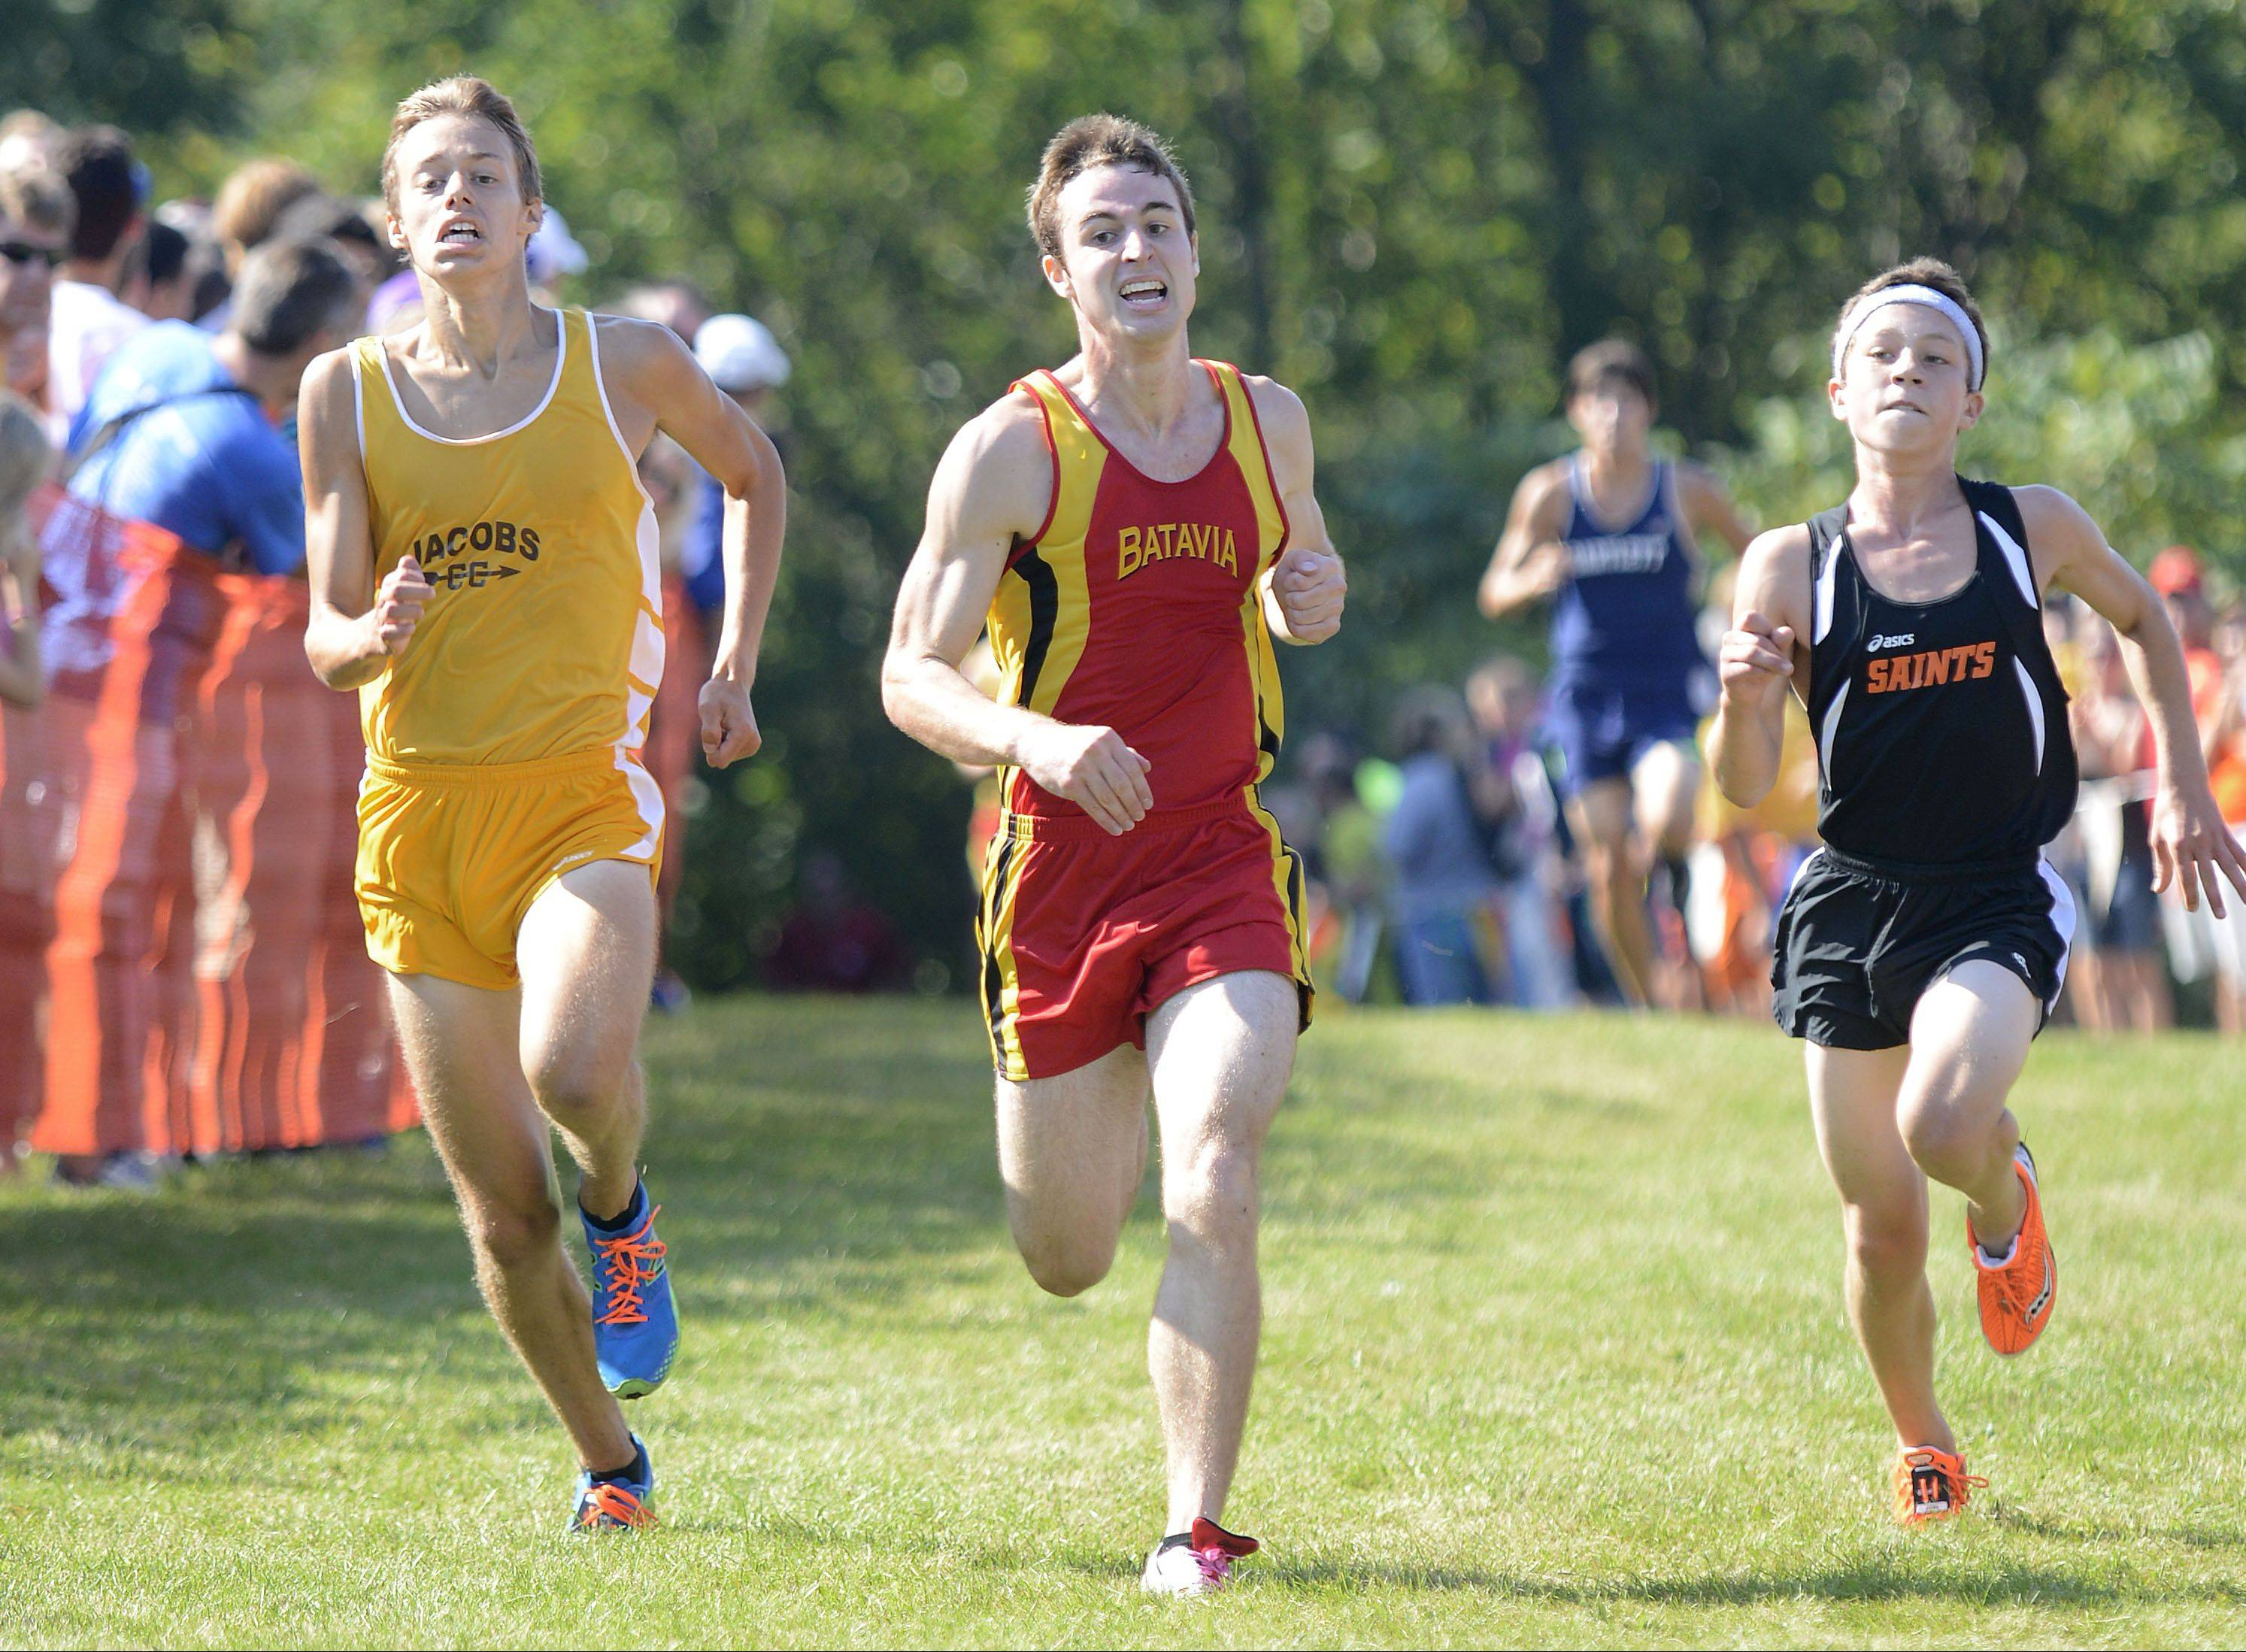 Jacobs' Corey Albrecht, Batavia's Mitch Zabka and St. Charles East's Mike Gerkin battle to the finish line Saturday at Leroy Oakes Forest Preserve in St. Charles.